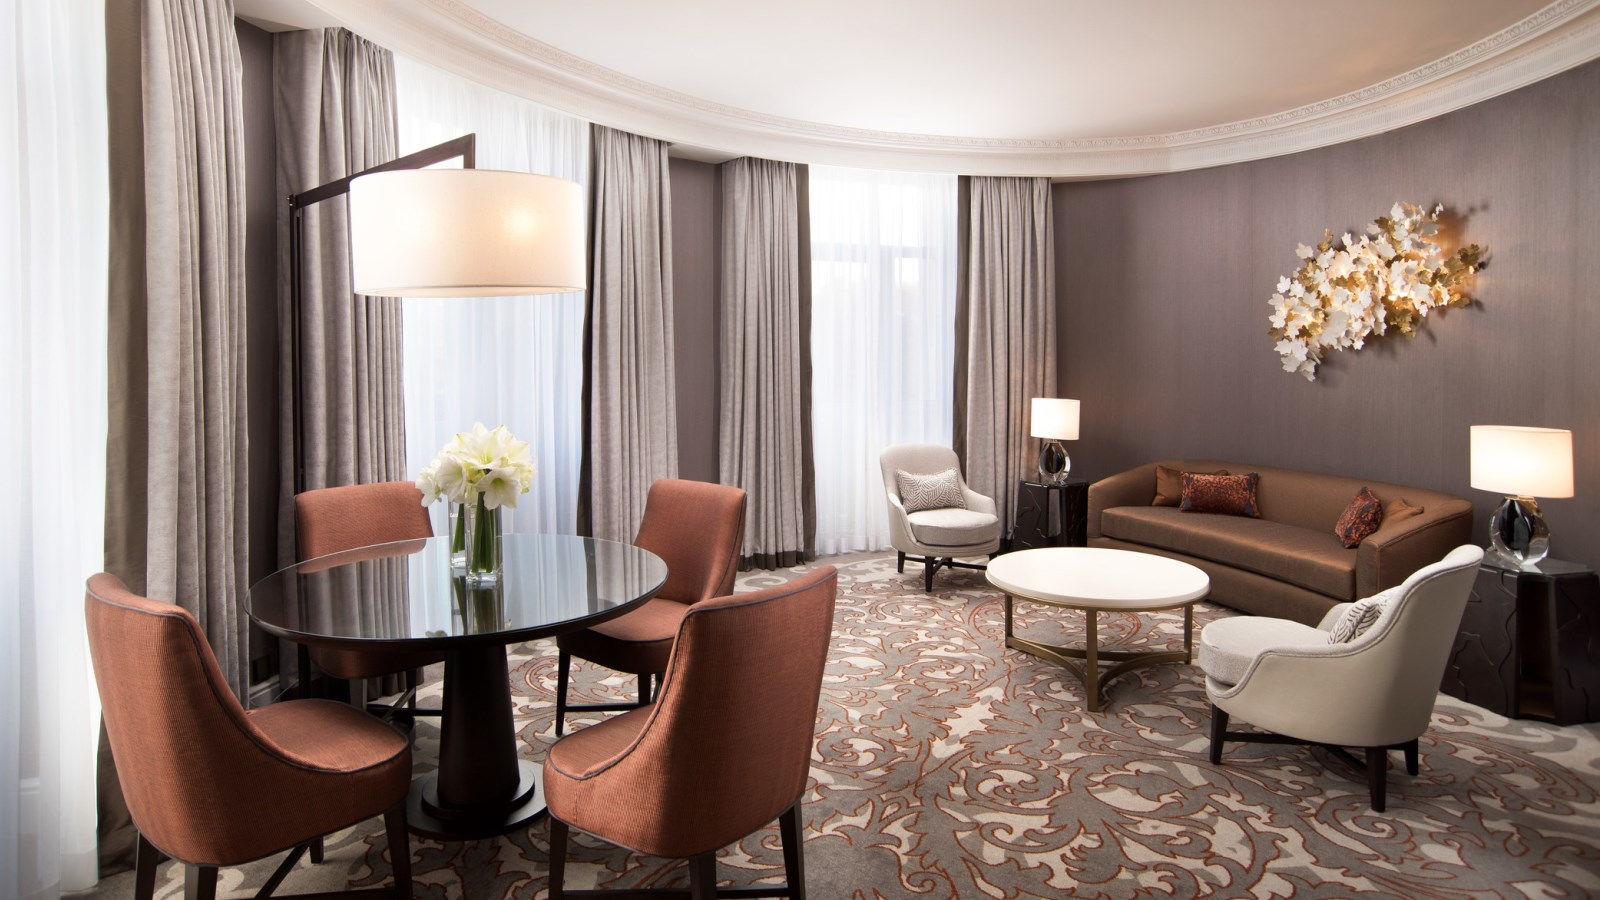 EXECUTIVE SUITE LIVING ROOM AT THE WESTIN PALACE, MADRID